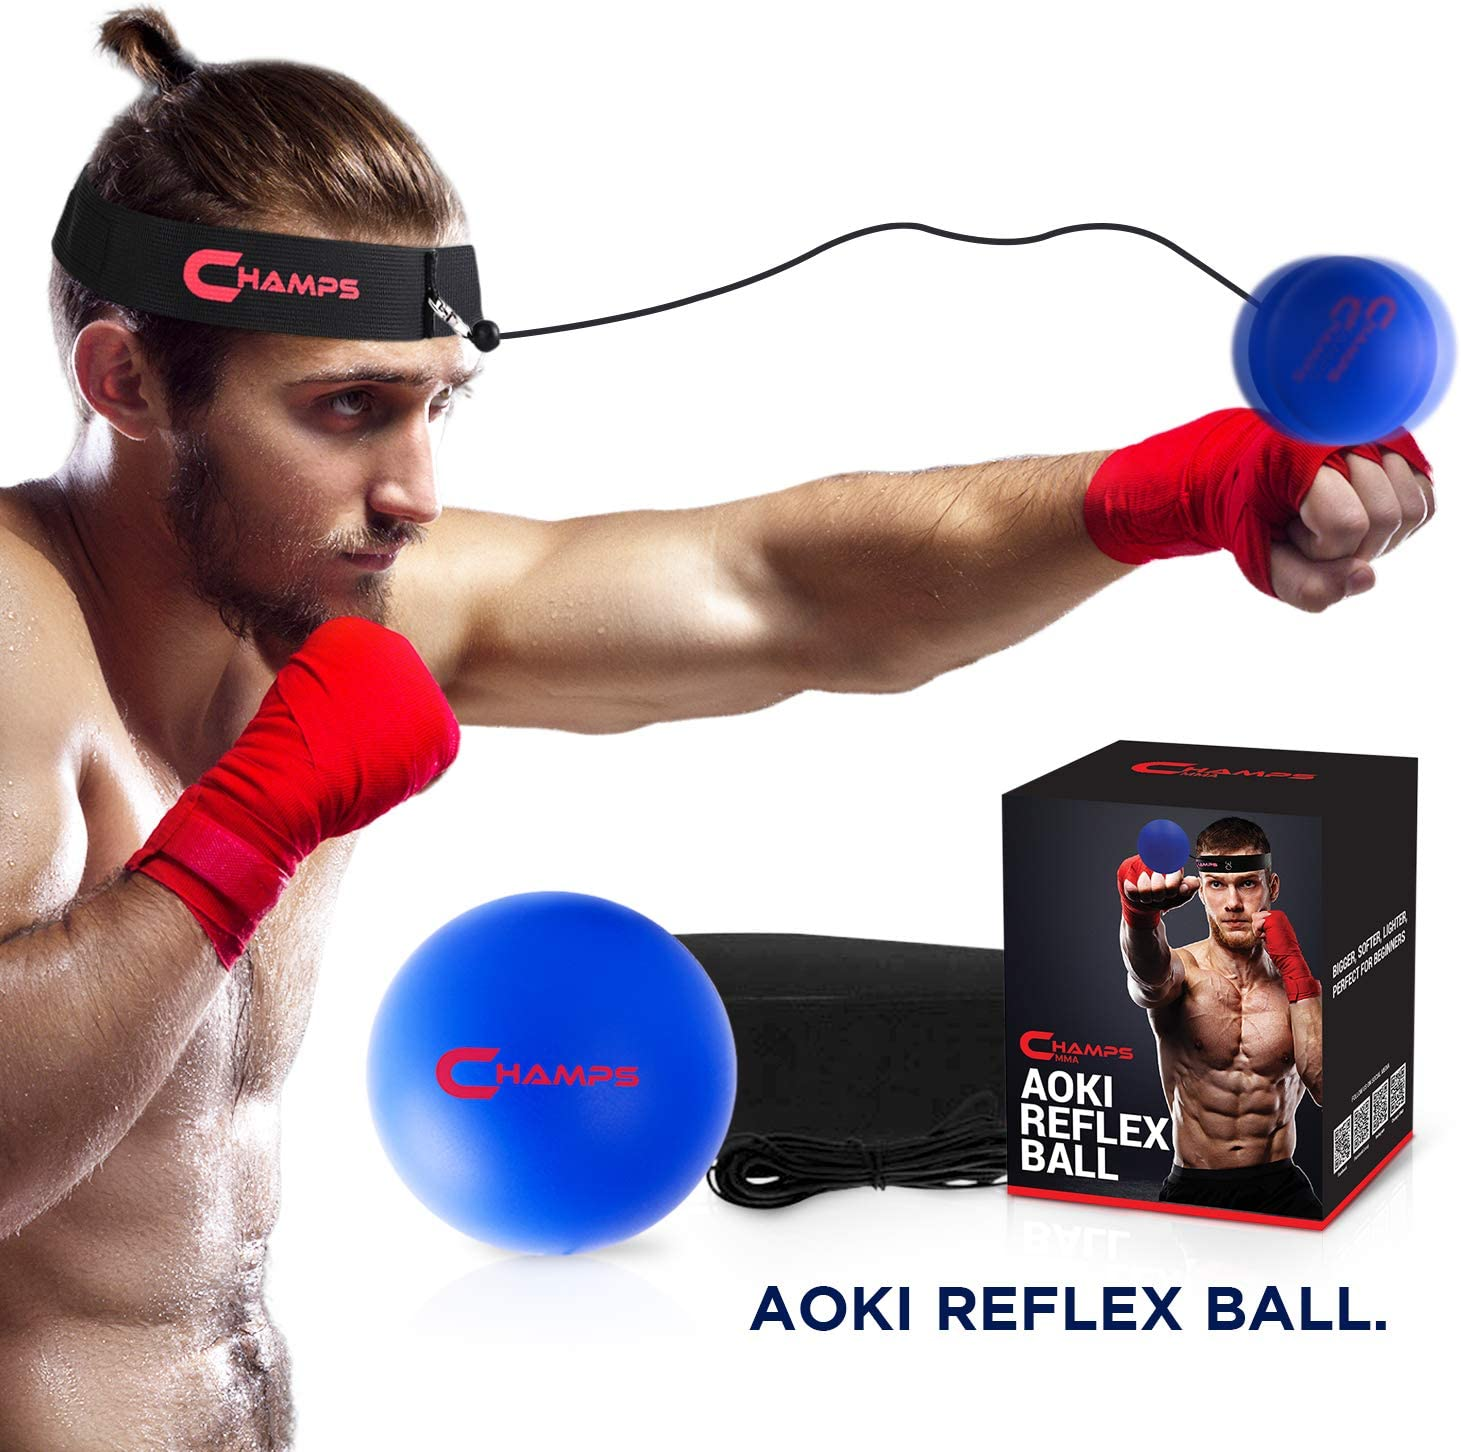 Boxing Equipment Fight Speed Champs MMA Boxing Reflex Ball Boxing Gear Punching Ball Great for Reaction Speed and Hand Eye Coordination Training Reflex Bag Alternative